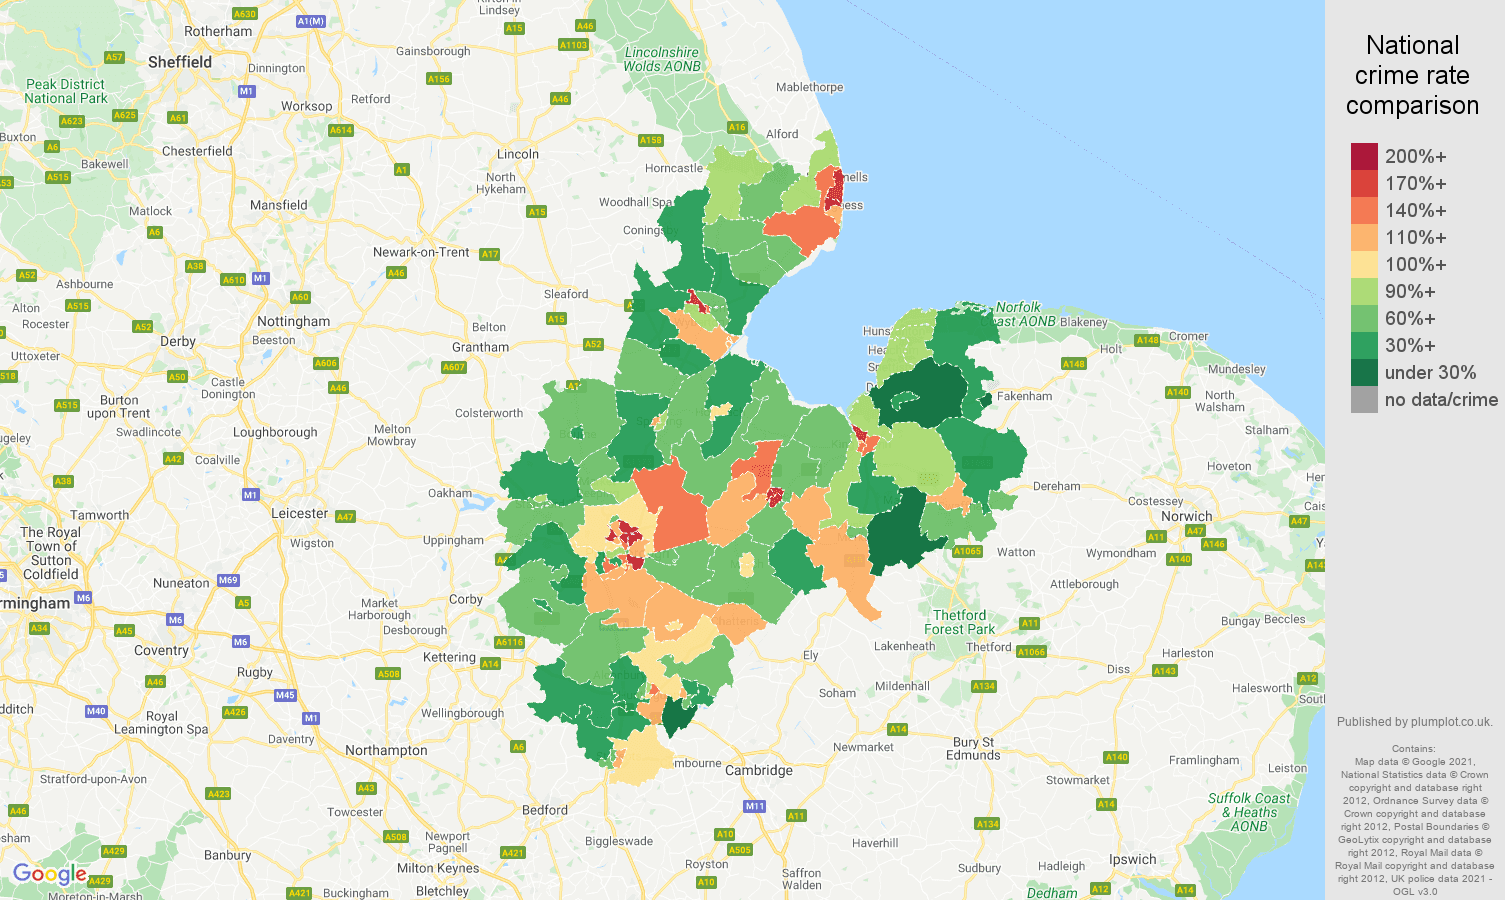 Peterborough criminal damage and arson crime rate comparison map